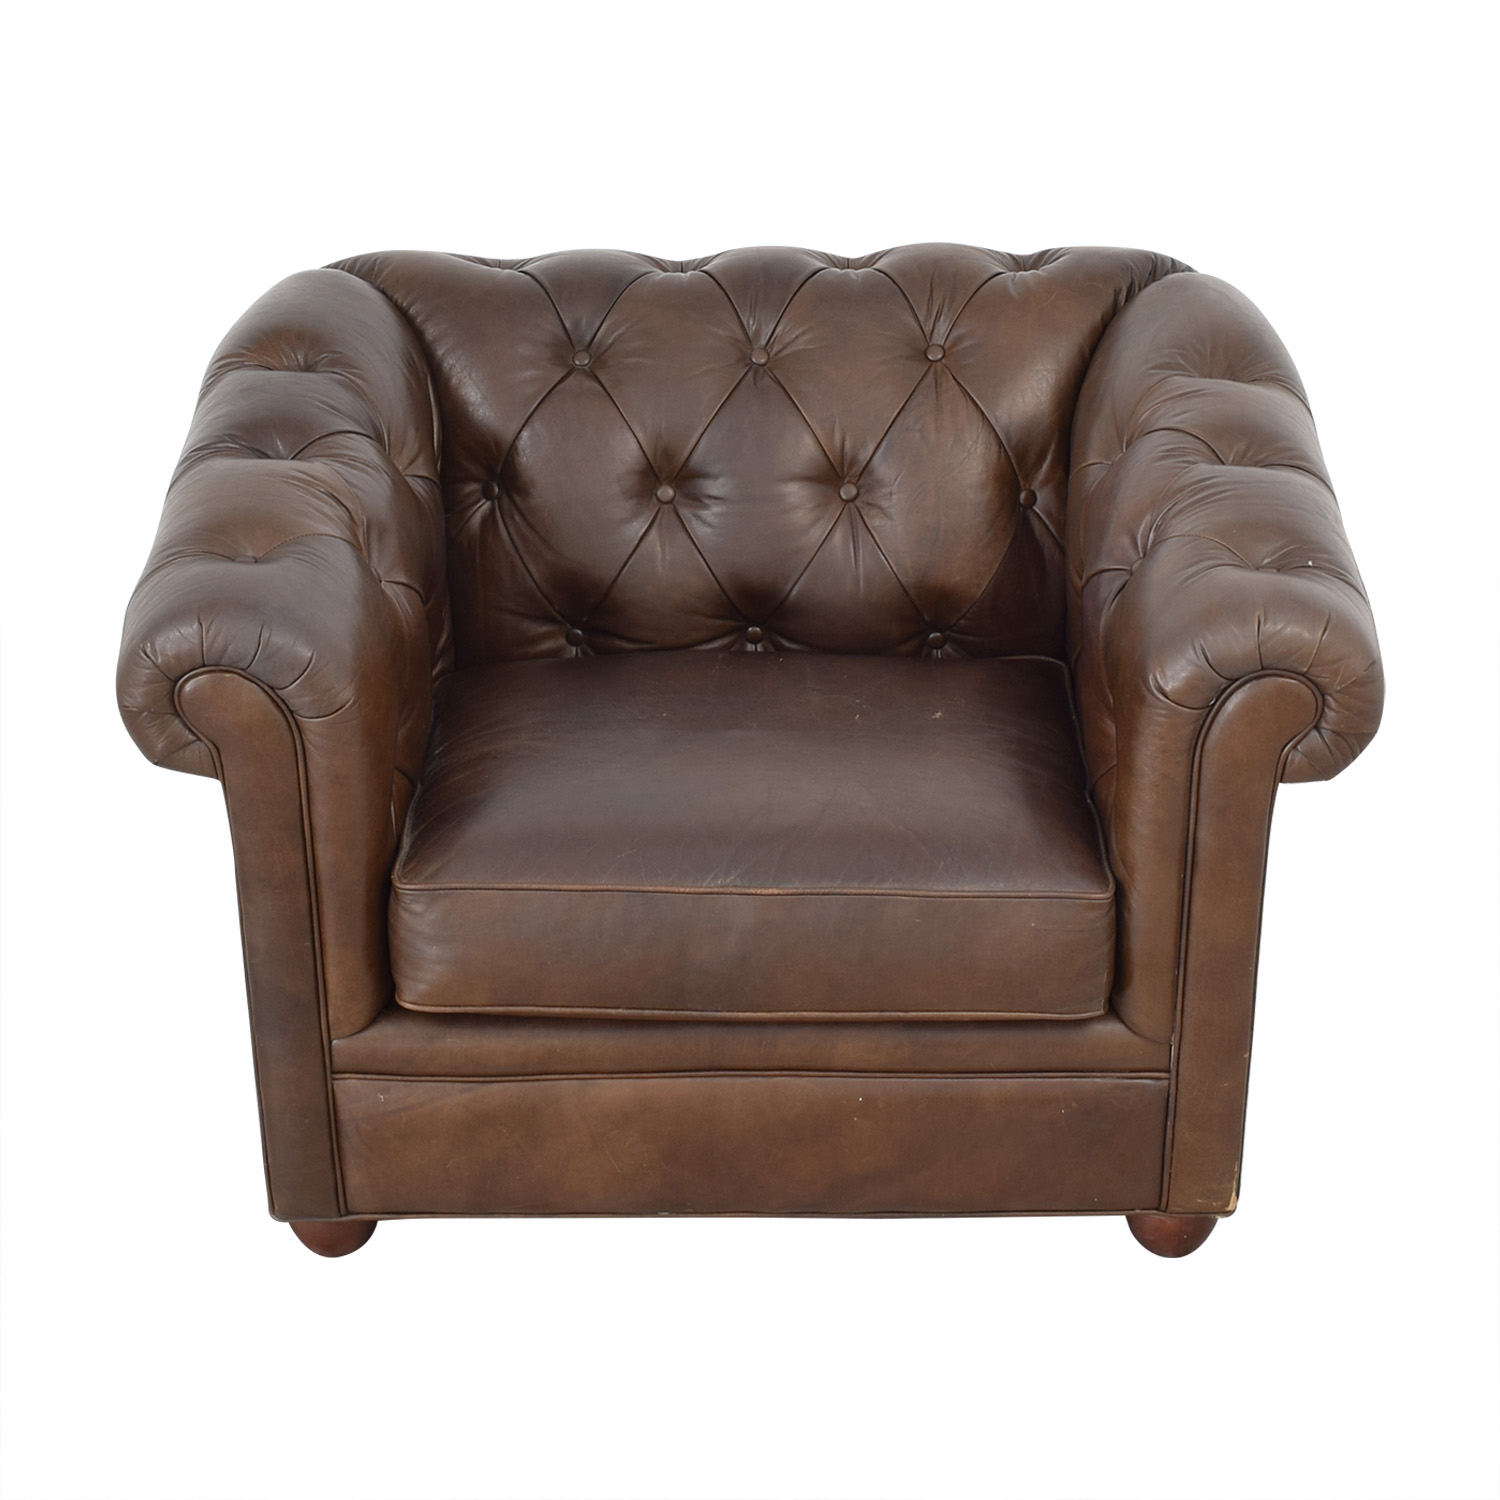 Pottery Barn Pottery Barn Chesterfield Armchair dark brown